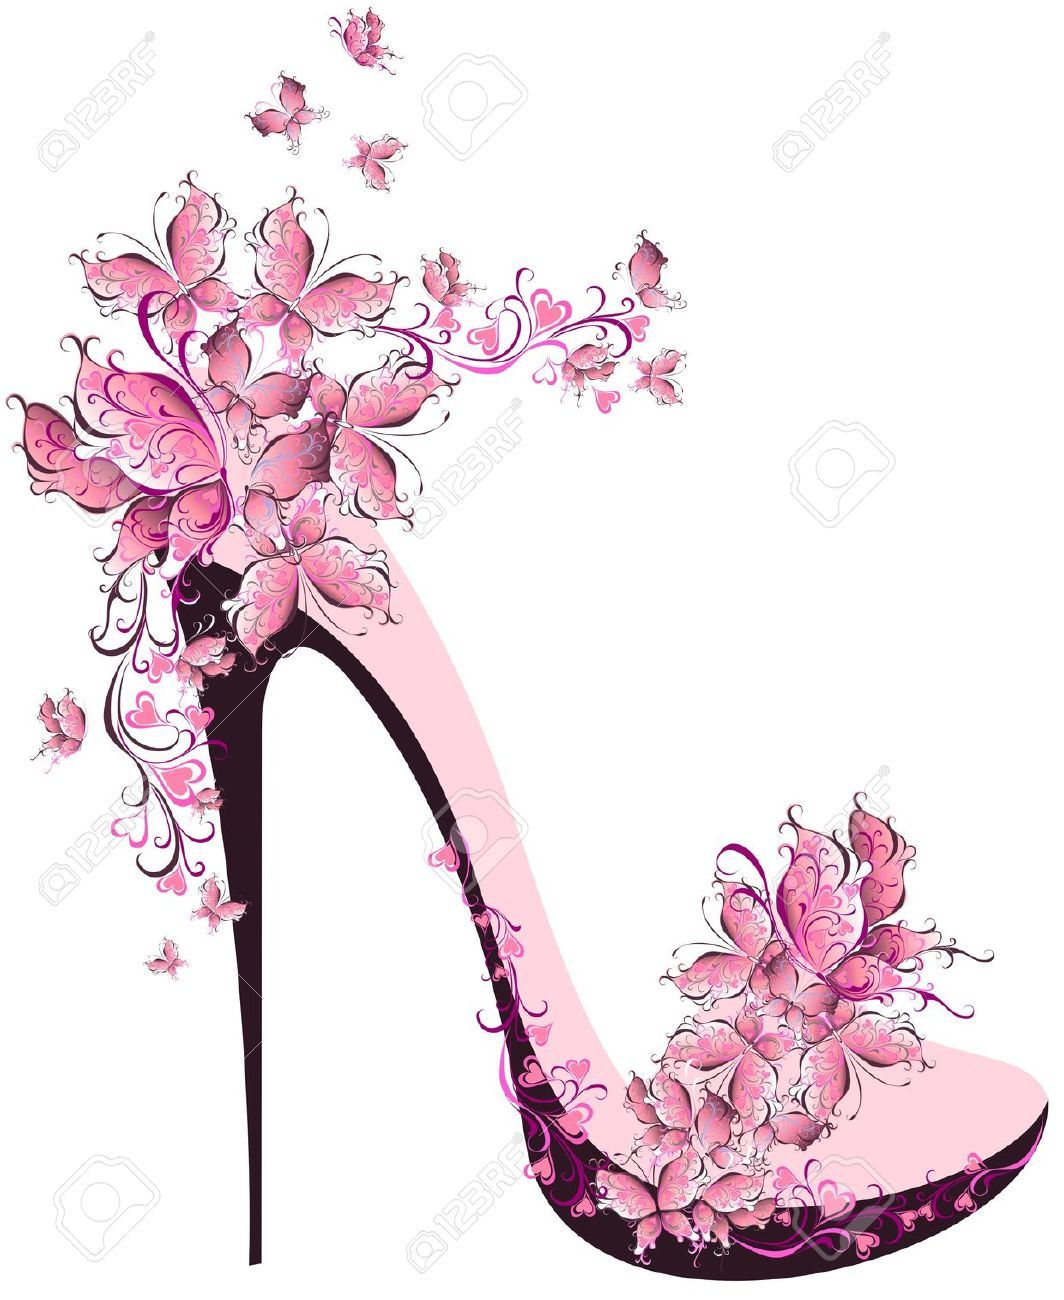 High Fashion Stock Photos Pictures Royalty Free High Fashion Images And Stock Photography Floral High Heels Shoe Art Shoes Illustration